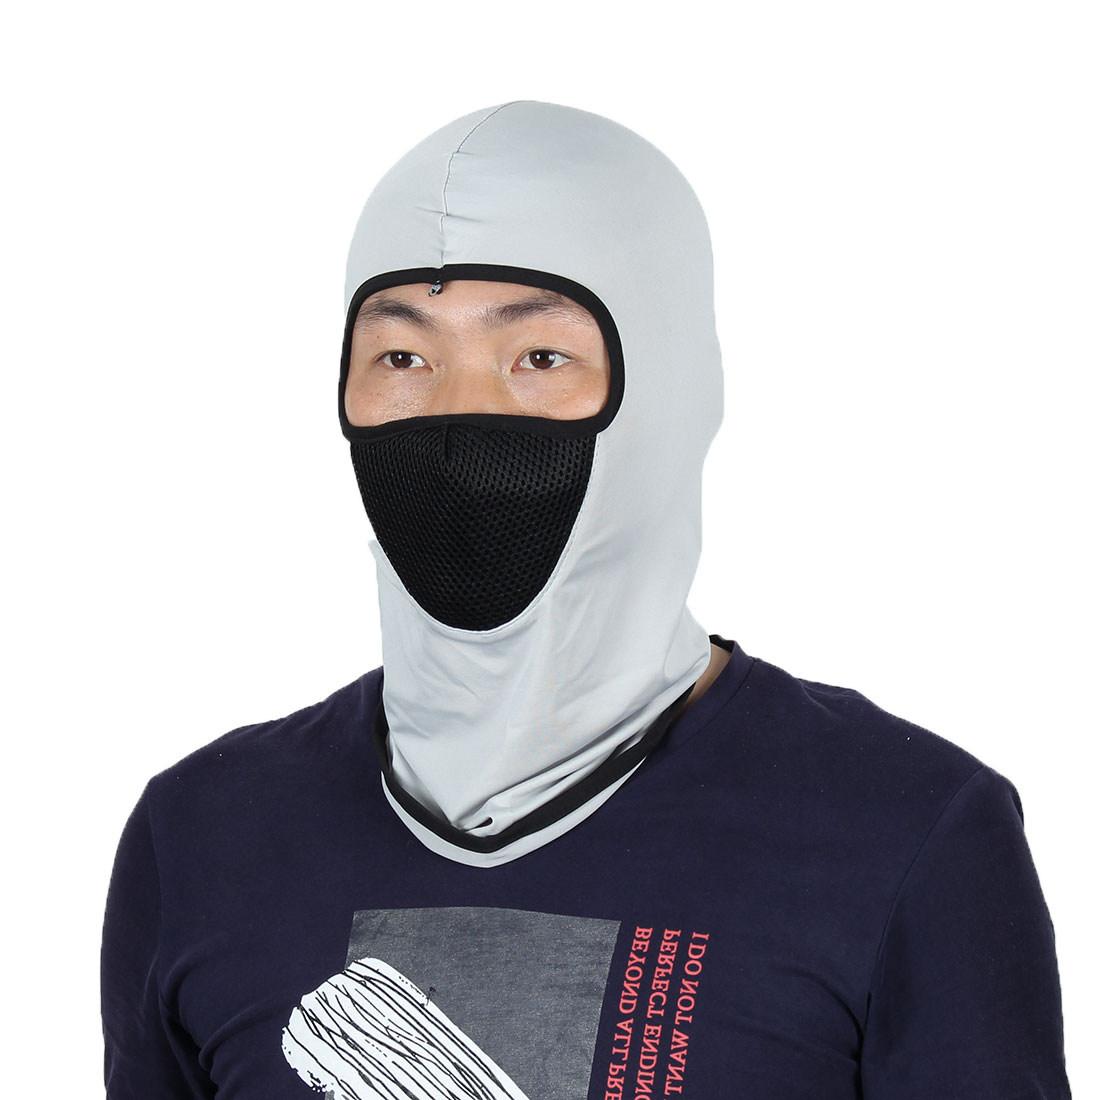 Full Face Mask Outdoor Sports Cycling Neck Protector Hat Helmet Balaclava Gray